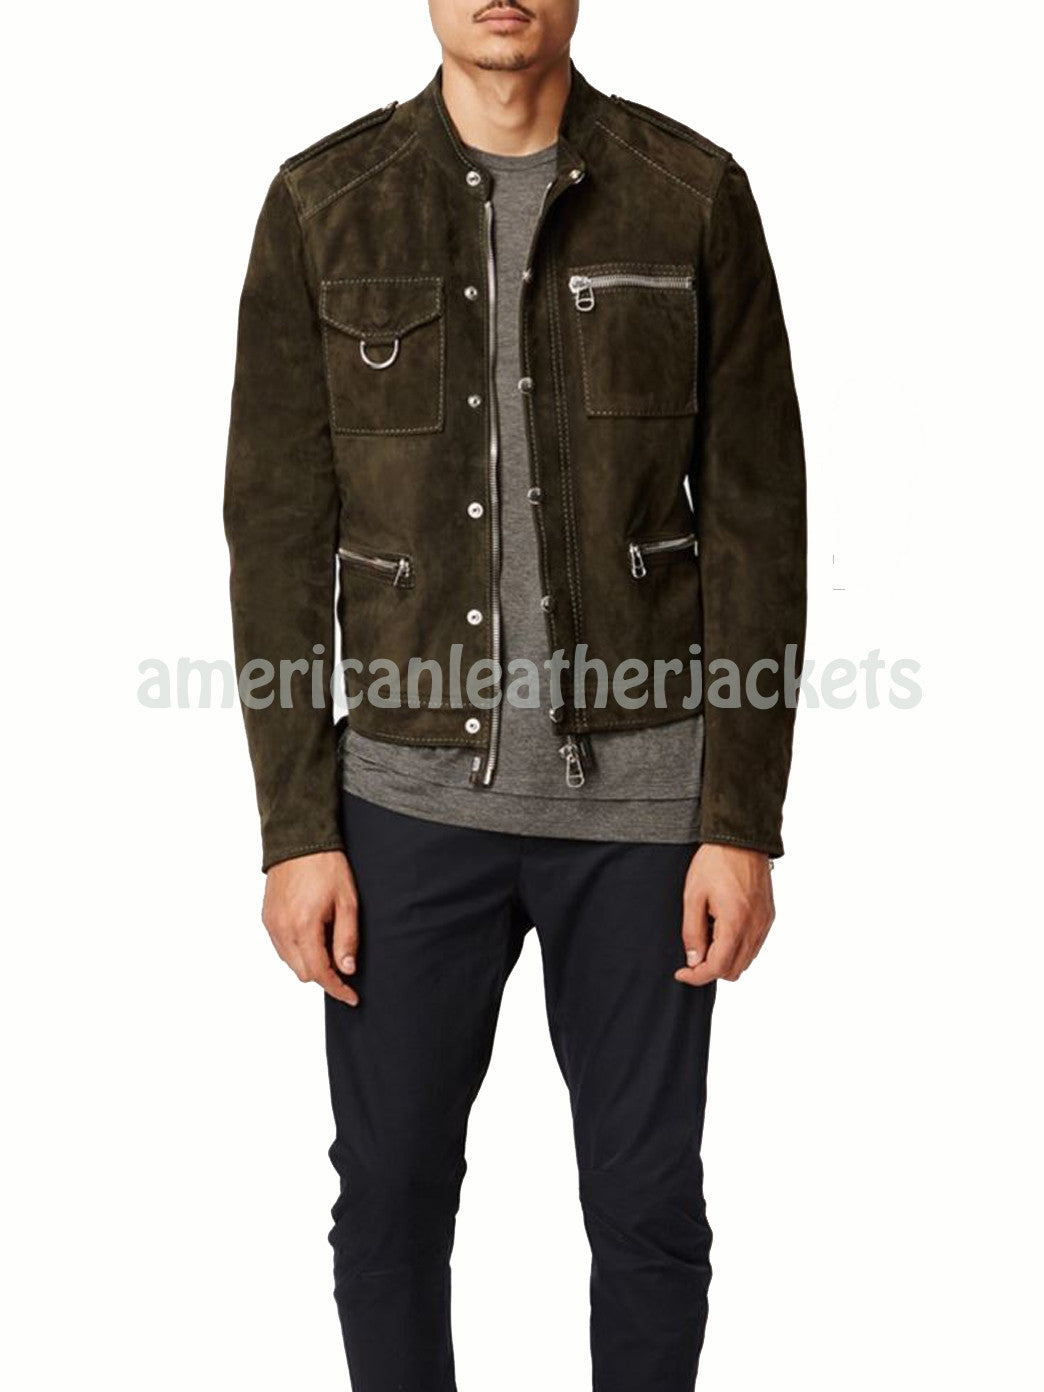 Shirt Styled Men Suede Leather Biker Jacket